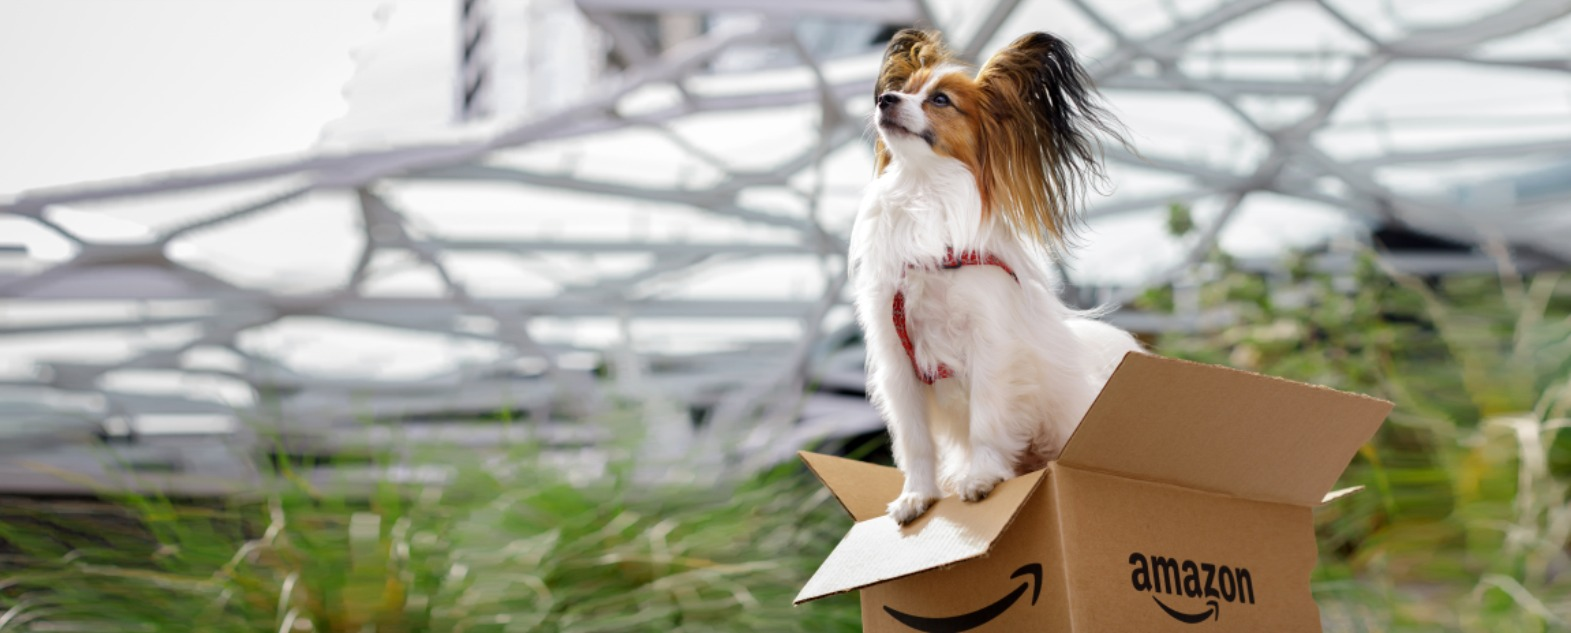 Amazon Dog in Amazon box